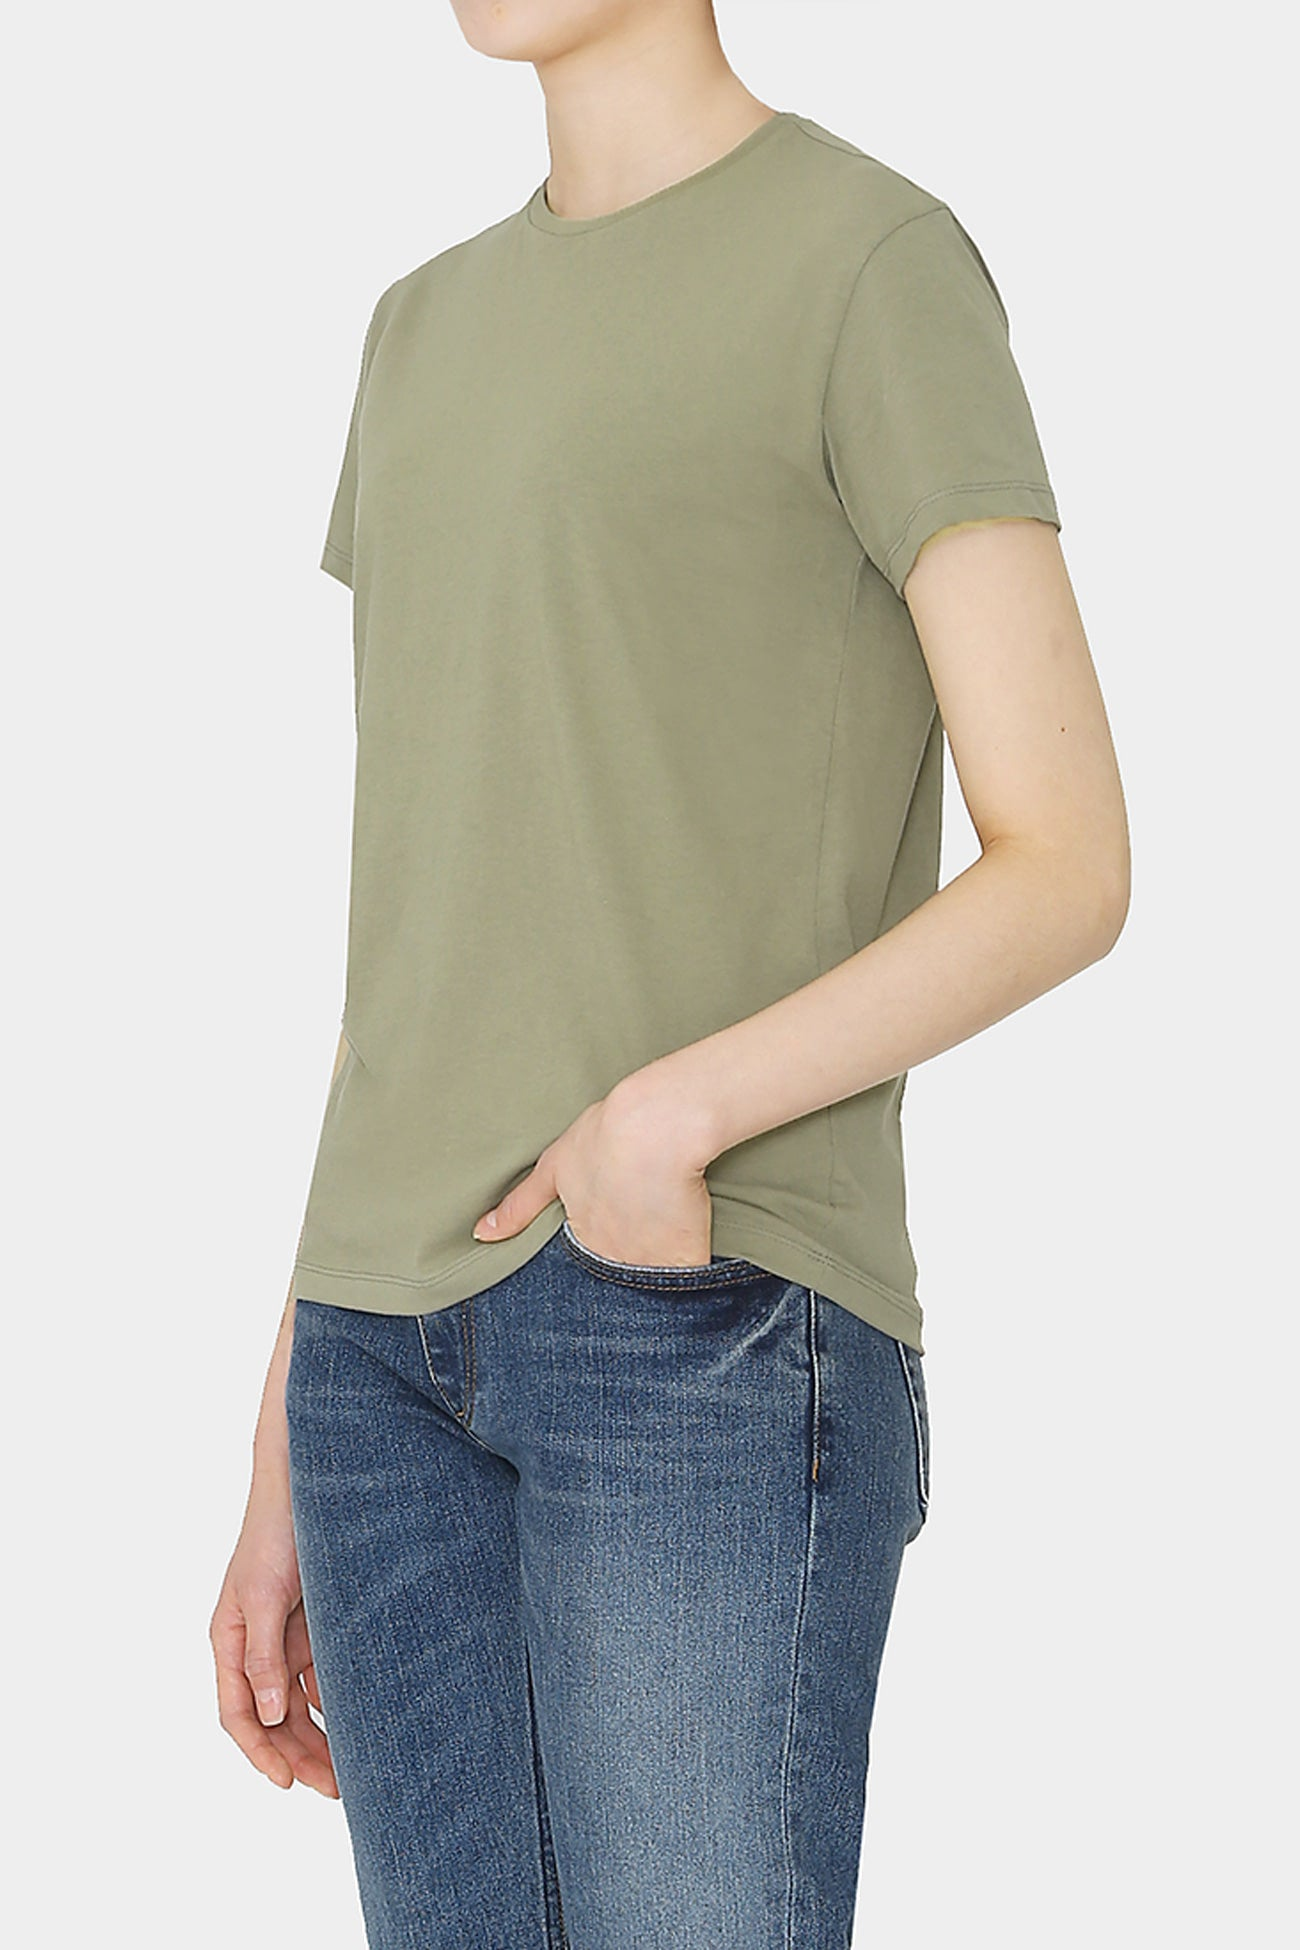 FADED OLIVE VIN COTTON T-SHIRT